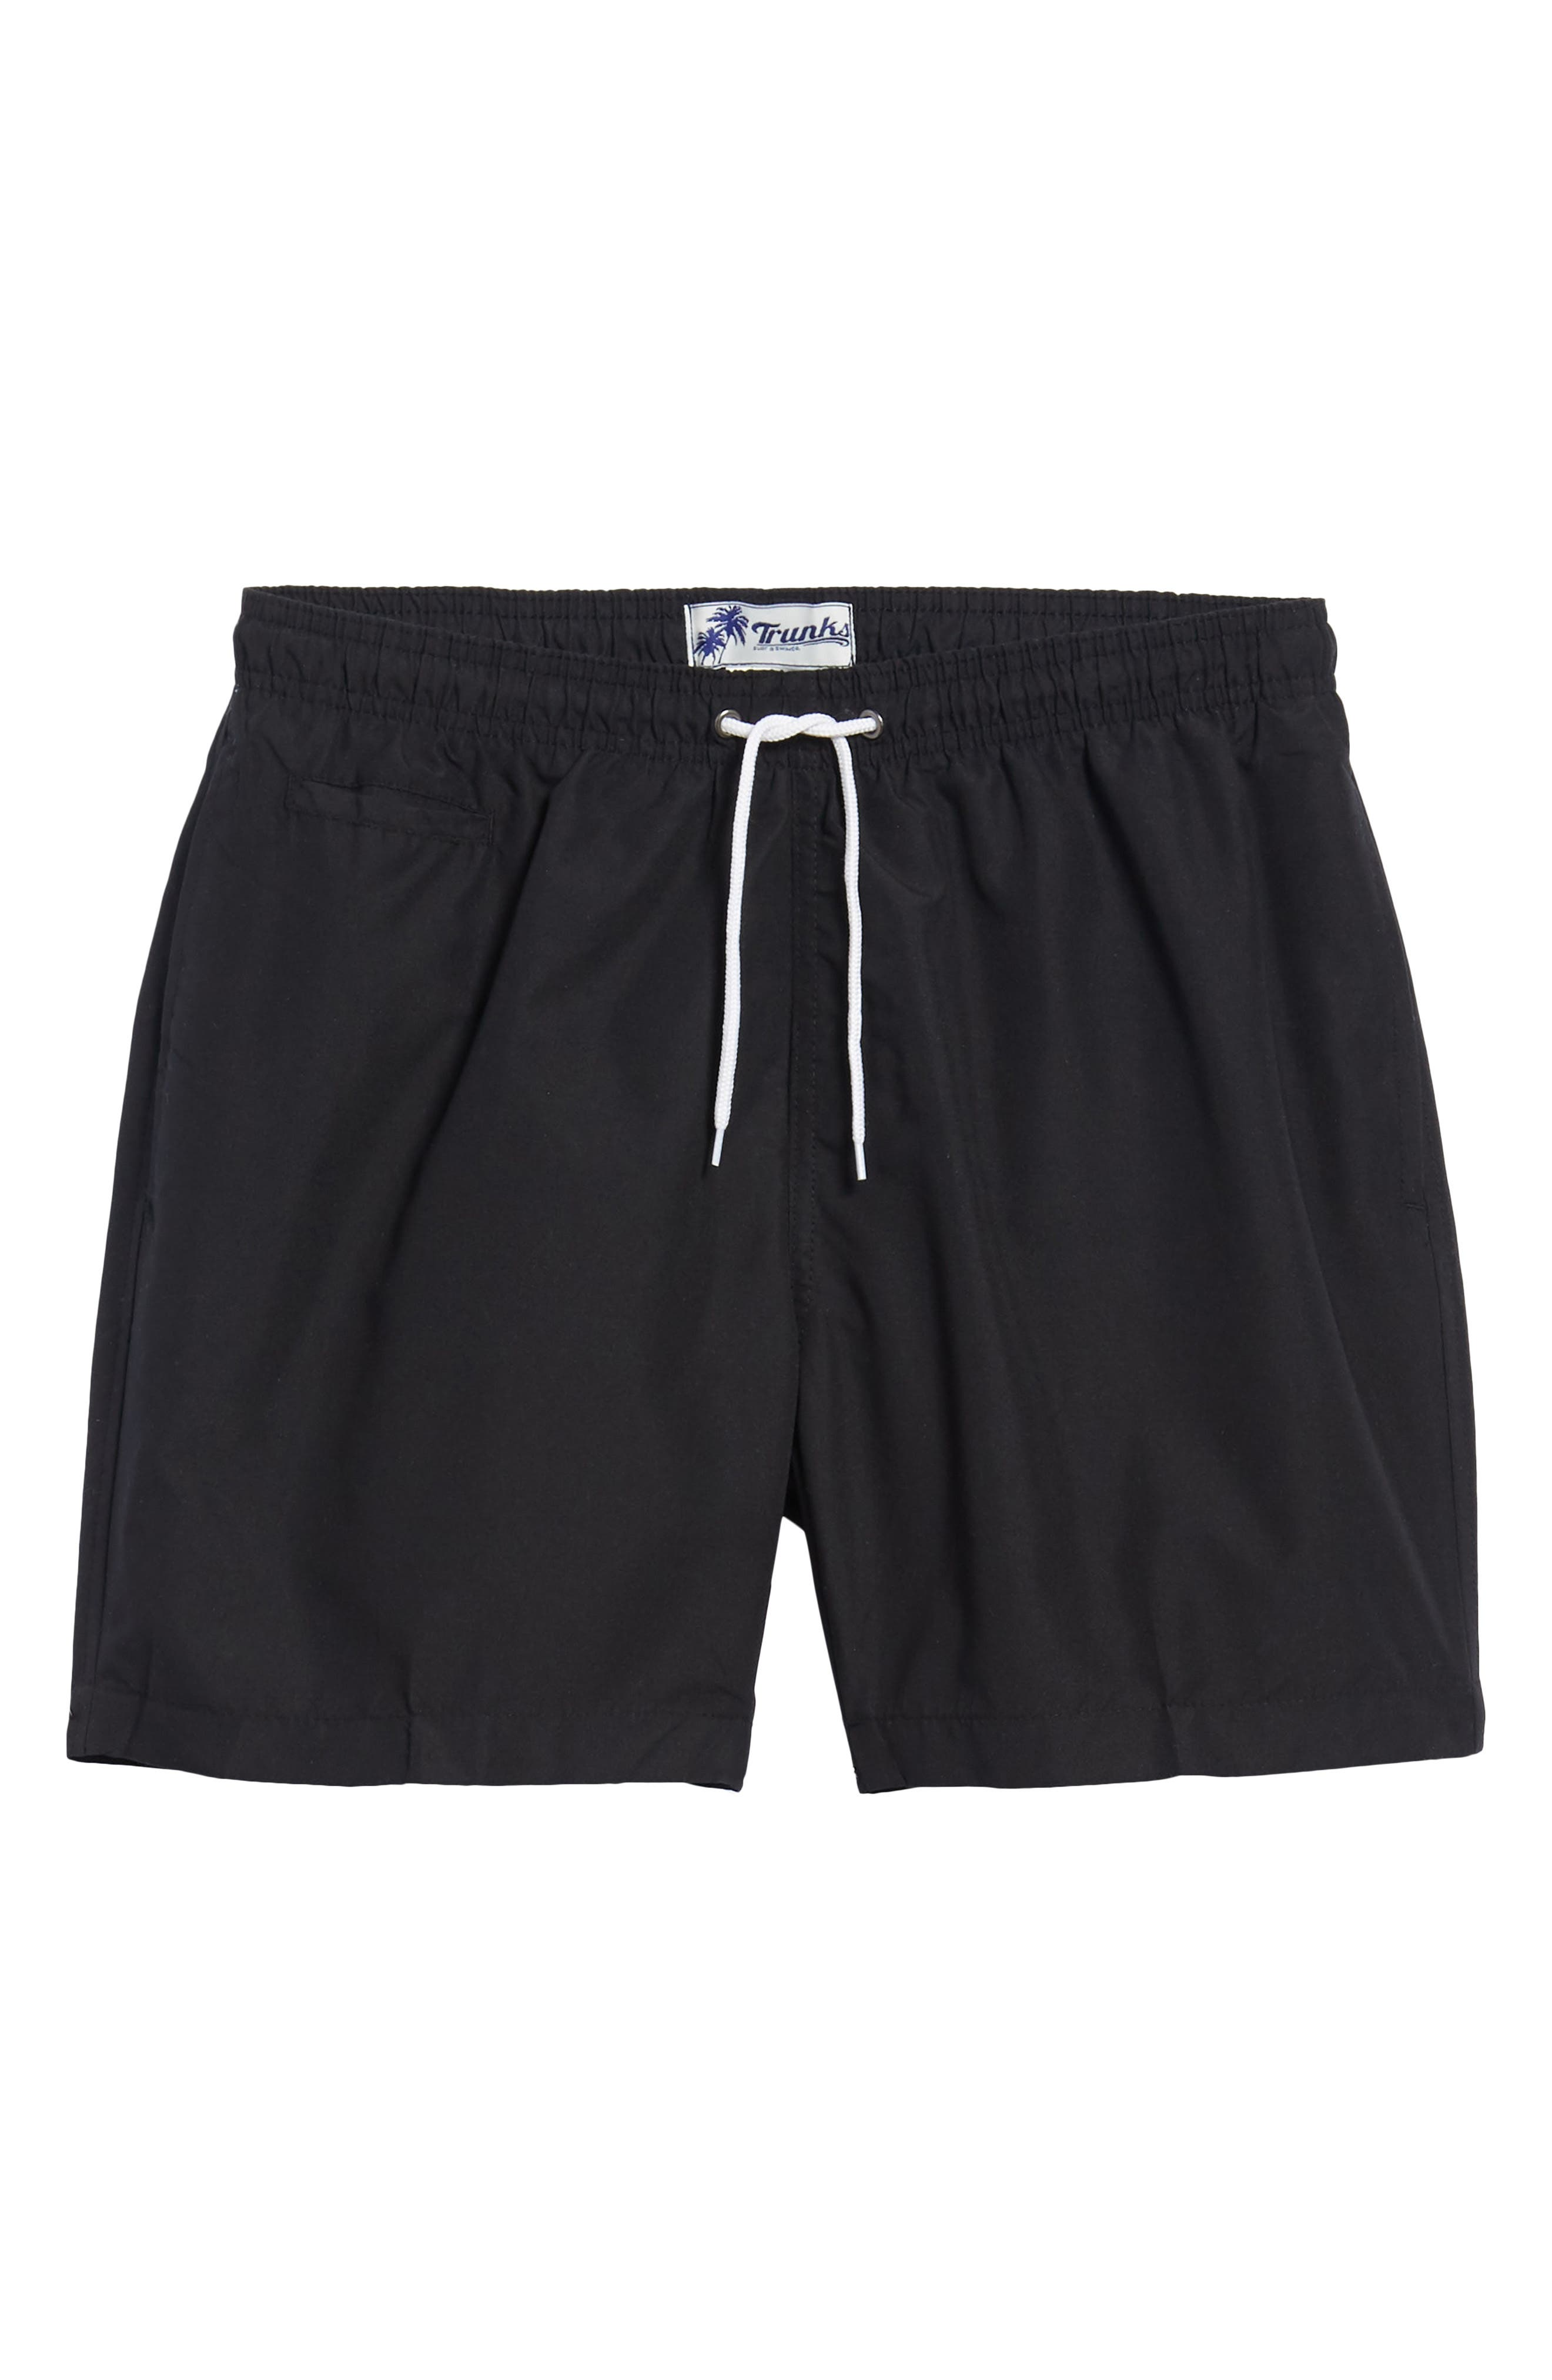 Trunks Surf & Swim 'San O' Volley Swim Shorts,                         Main,                         color, Black